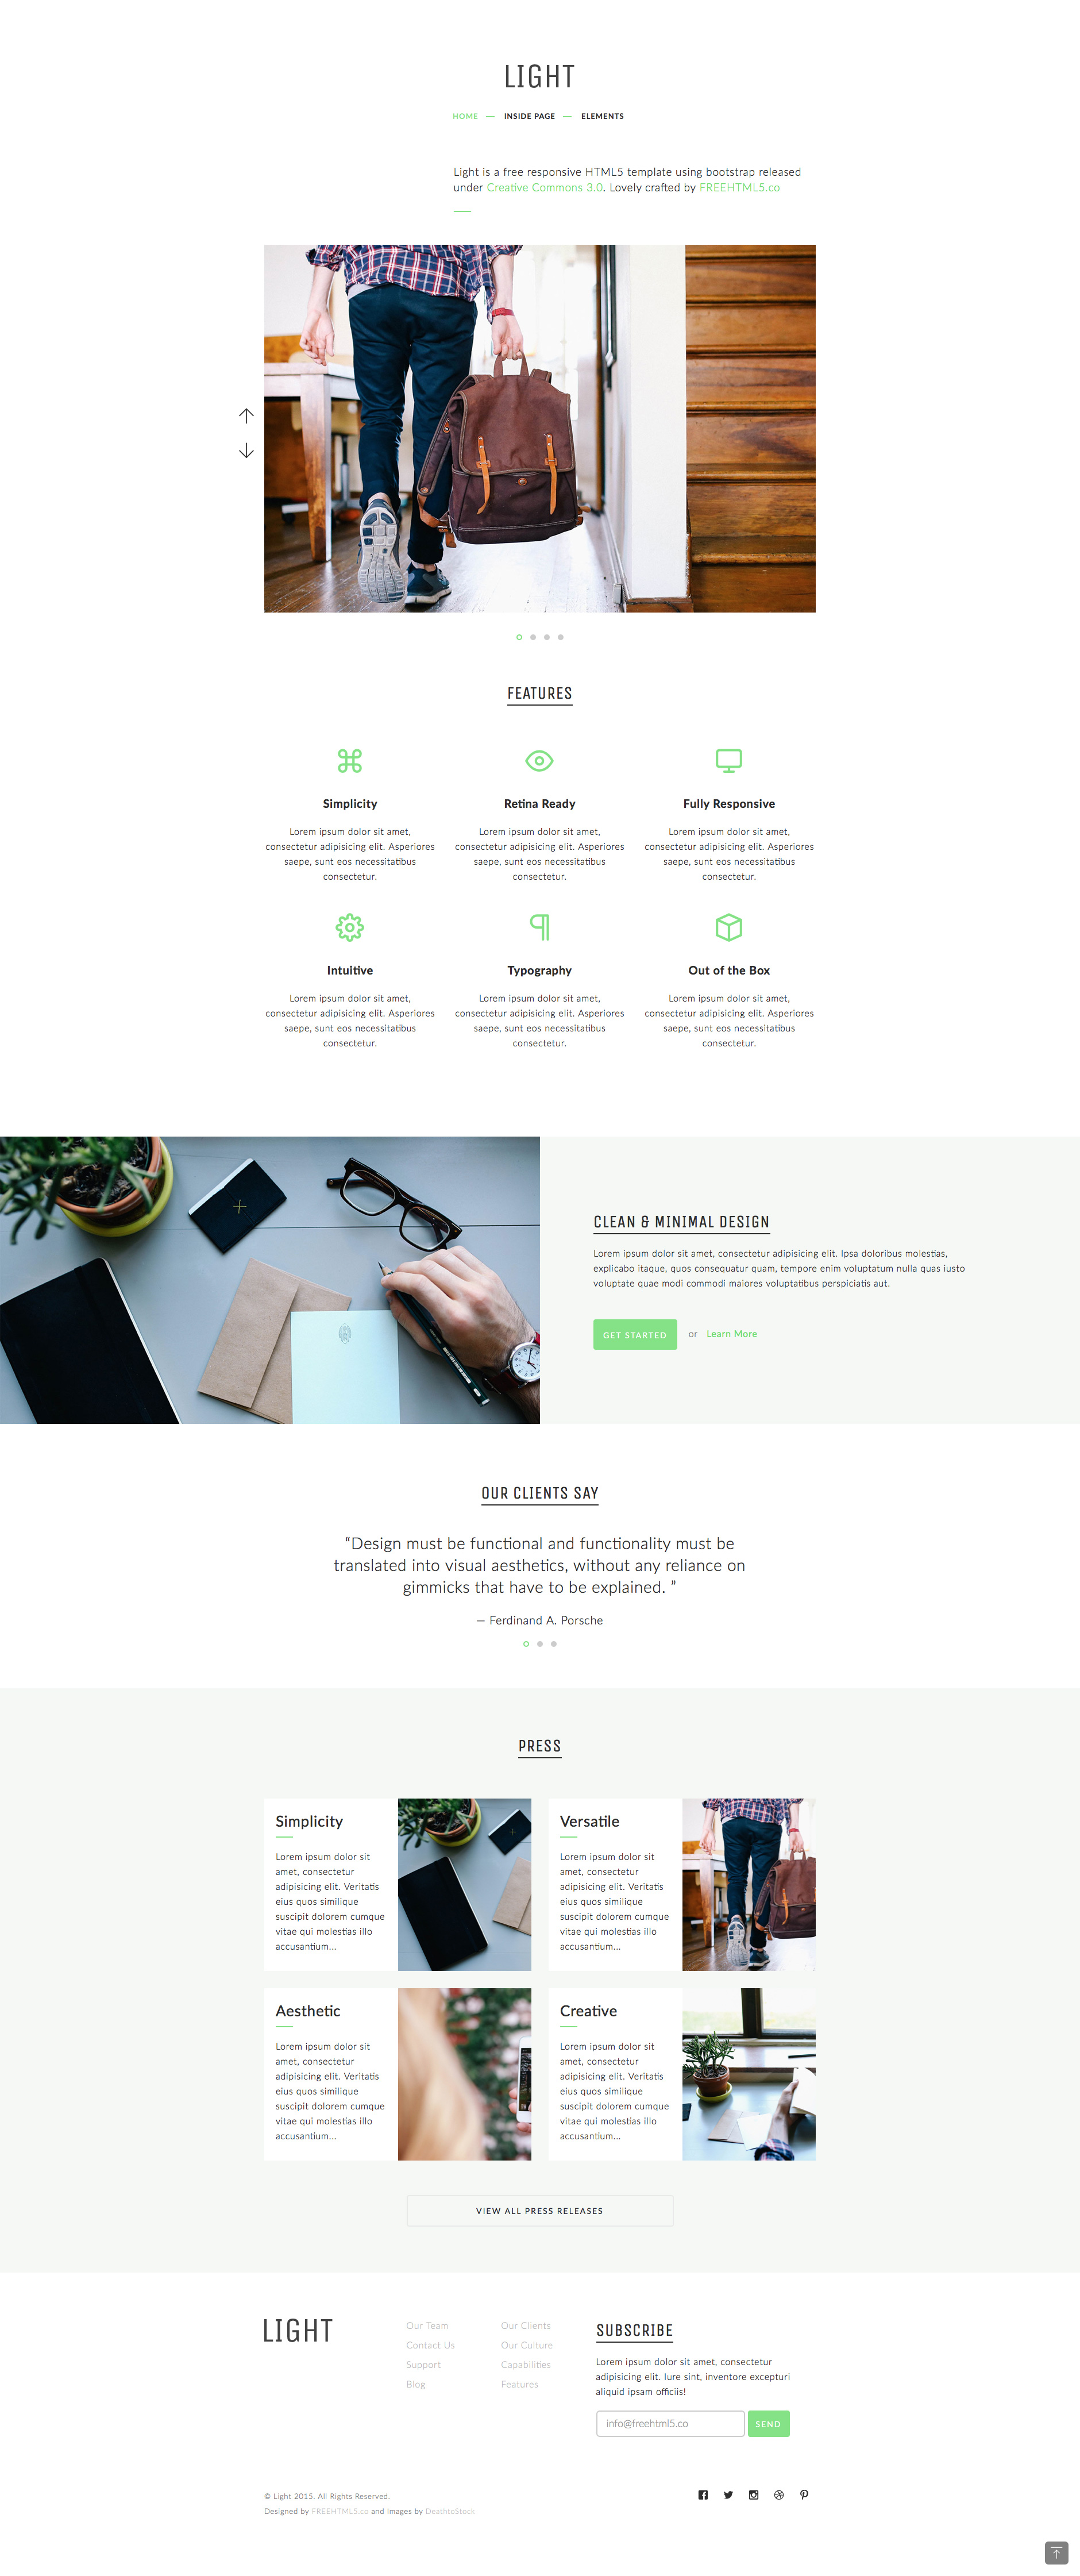 Light is a free responsive HTML5 Bootstrap multipurpose website template. It features fully responsive and mobile friendly design, google map, lightbox and carousel. Light template is fully responsive and built on the popular Bootstrap 3 framework.